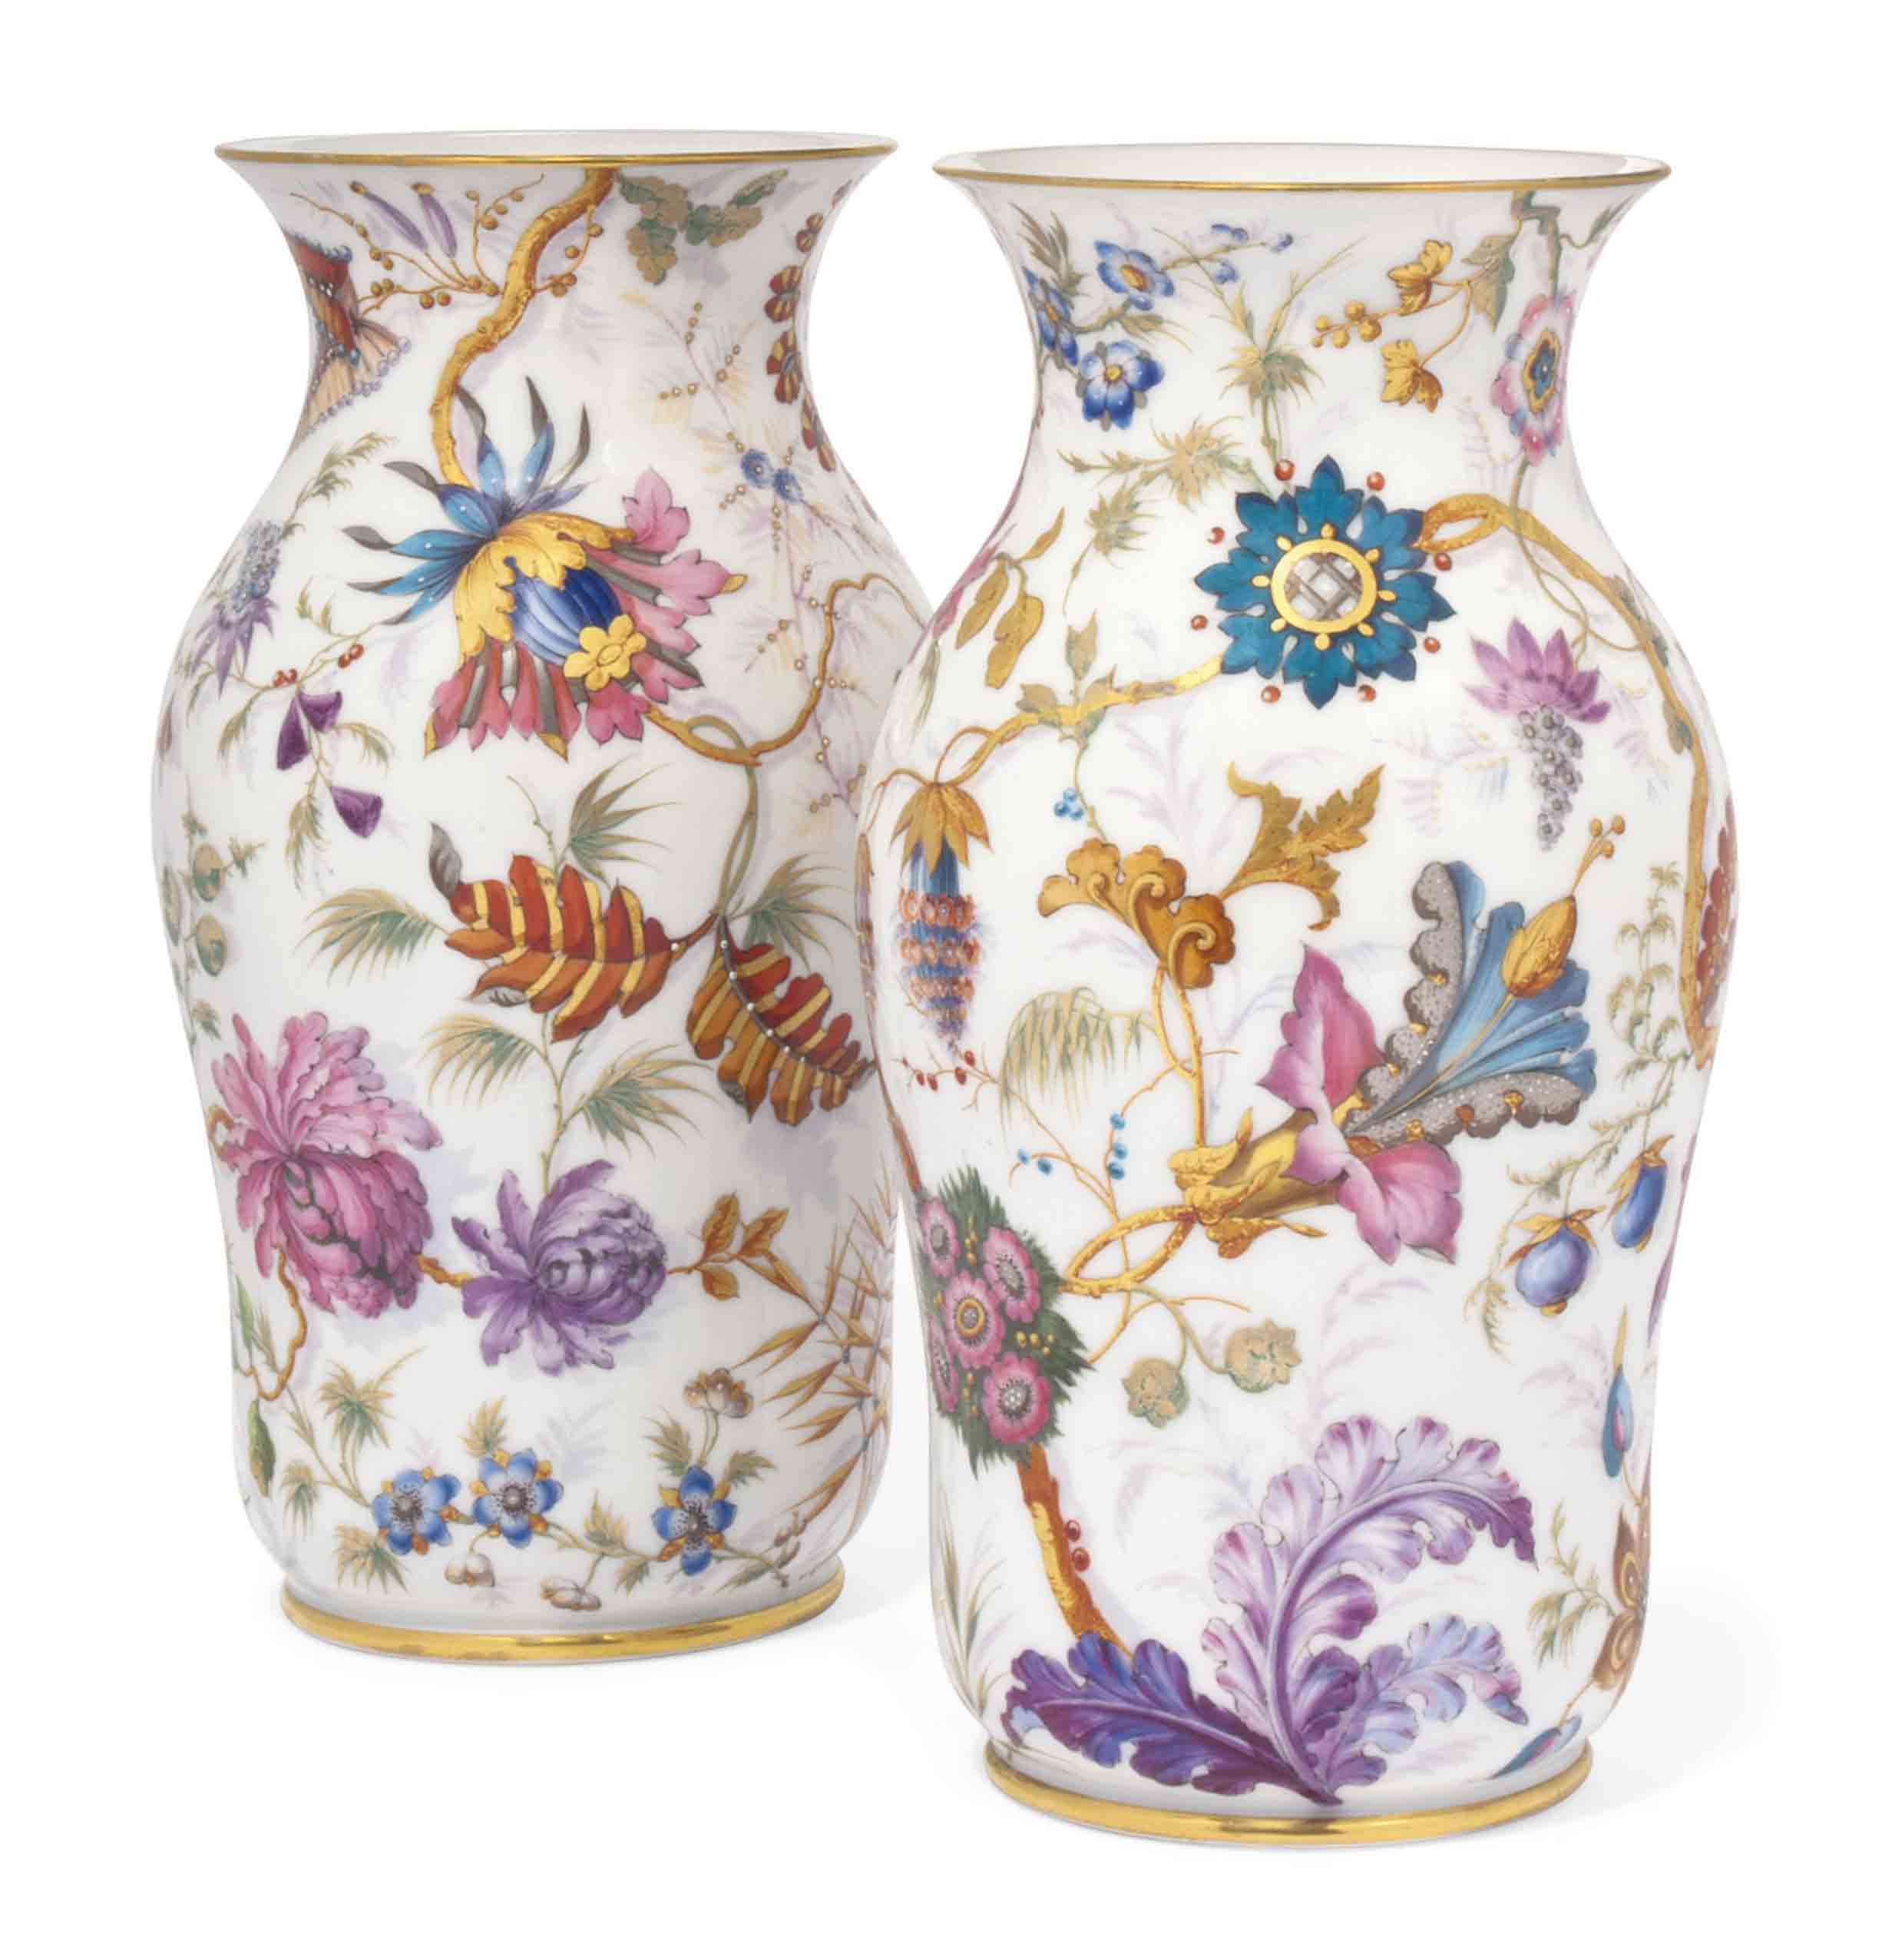 A PAIR OF PARIS PORCELAIN VASE